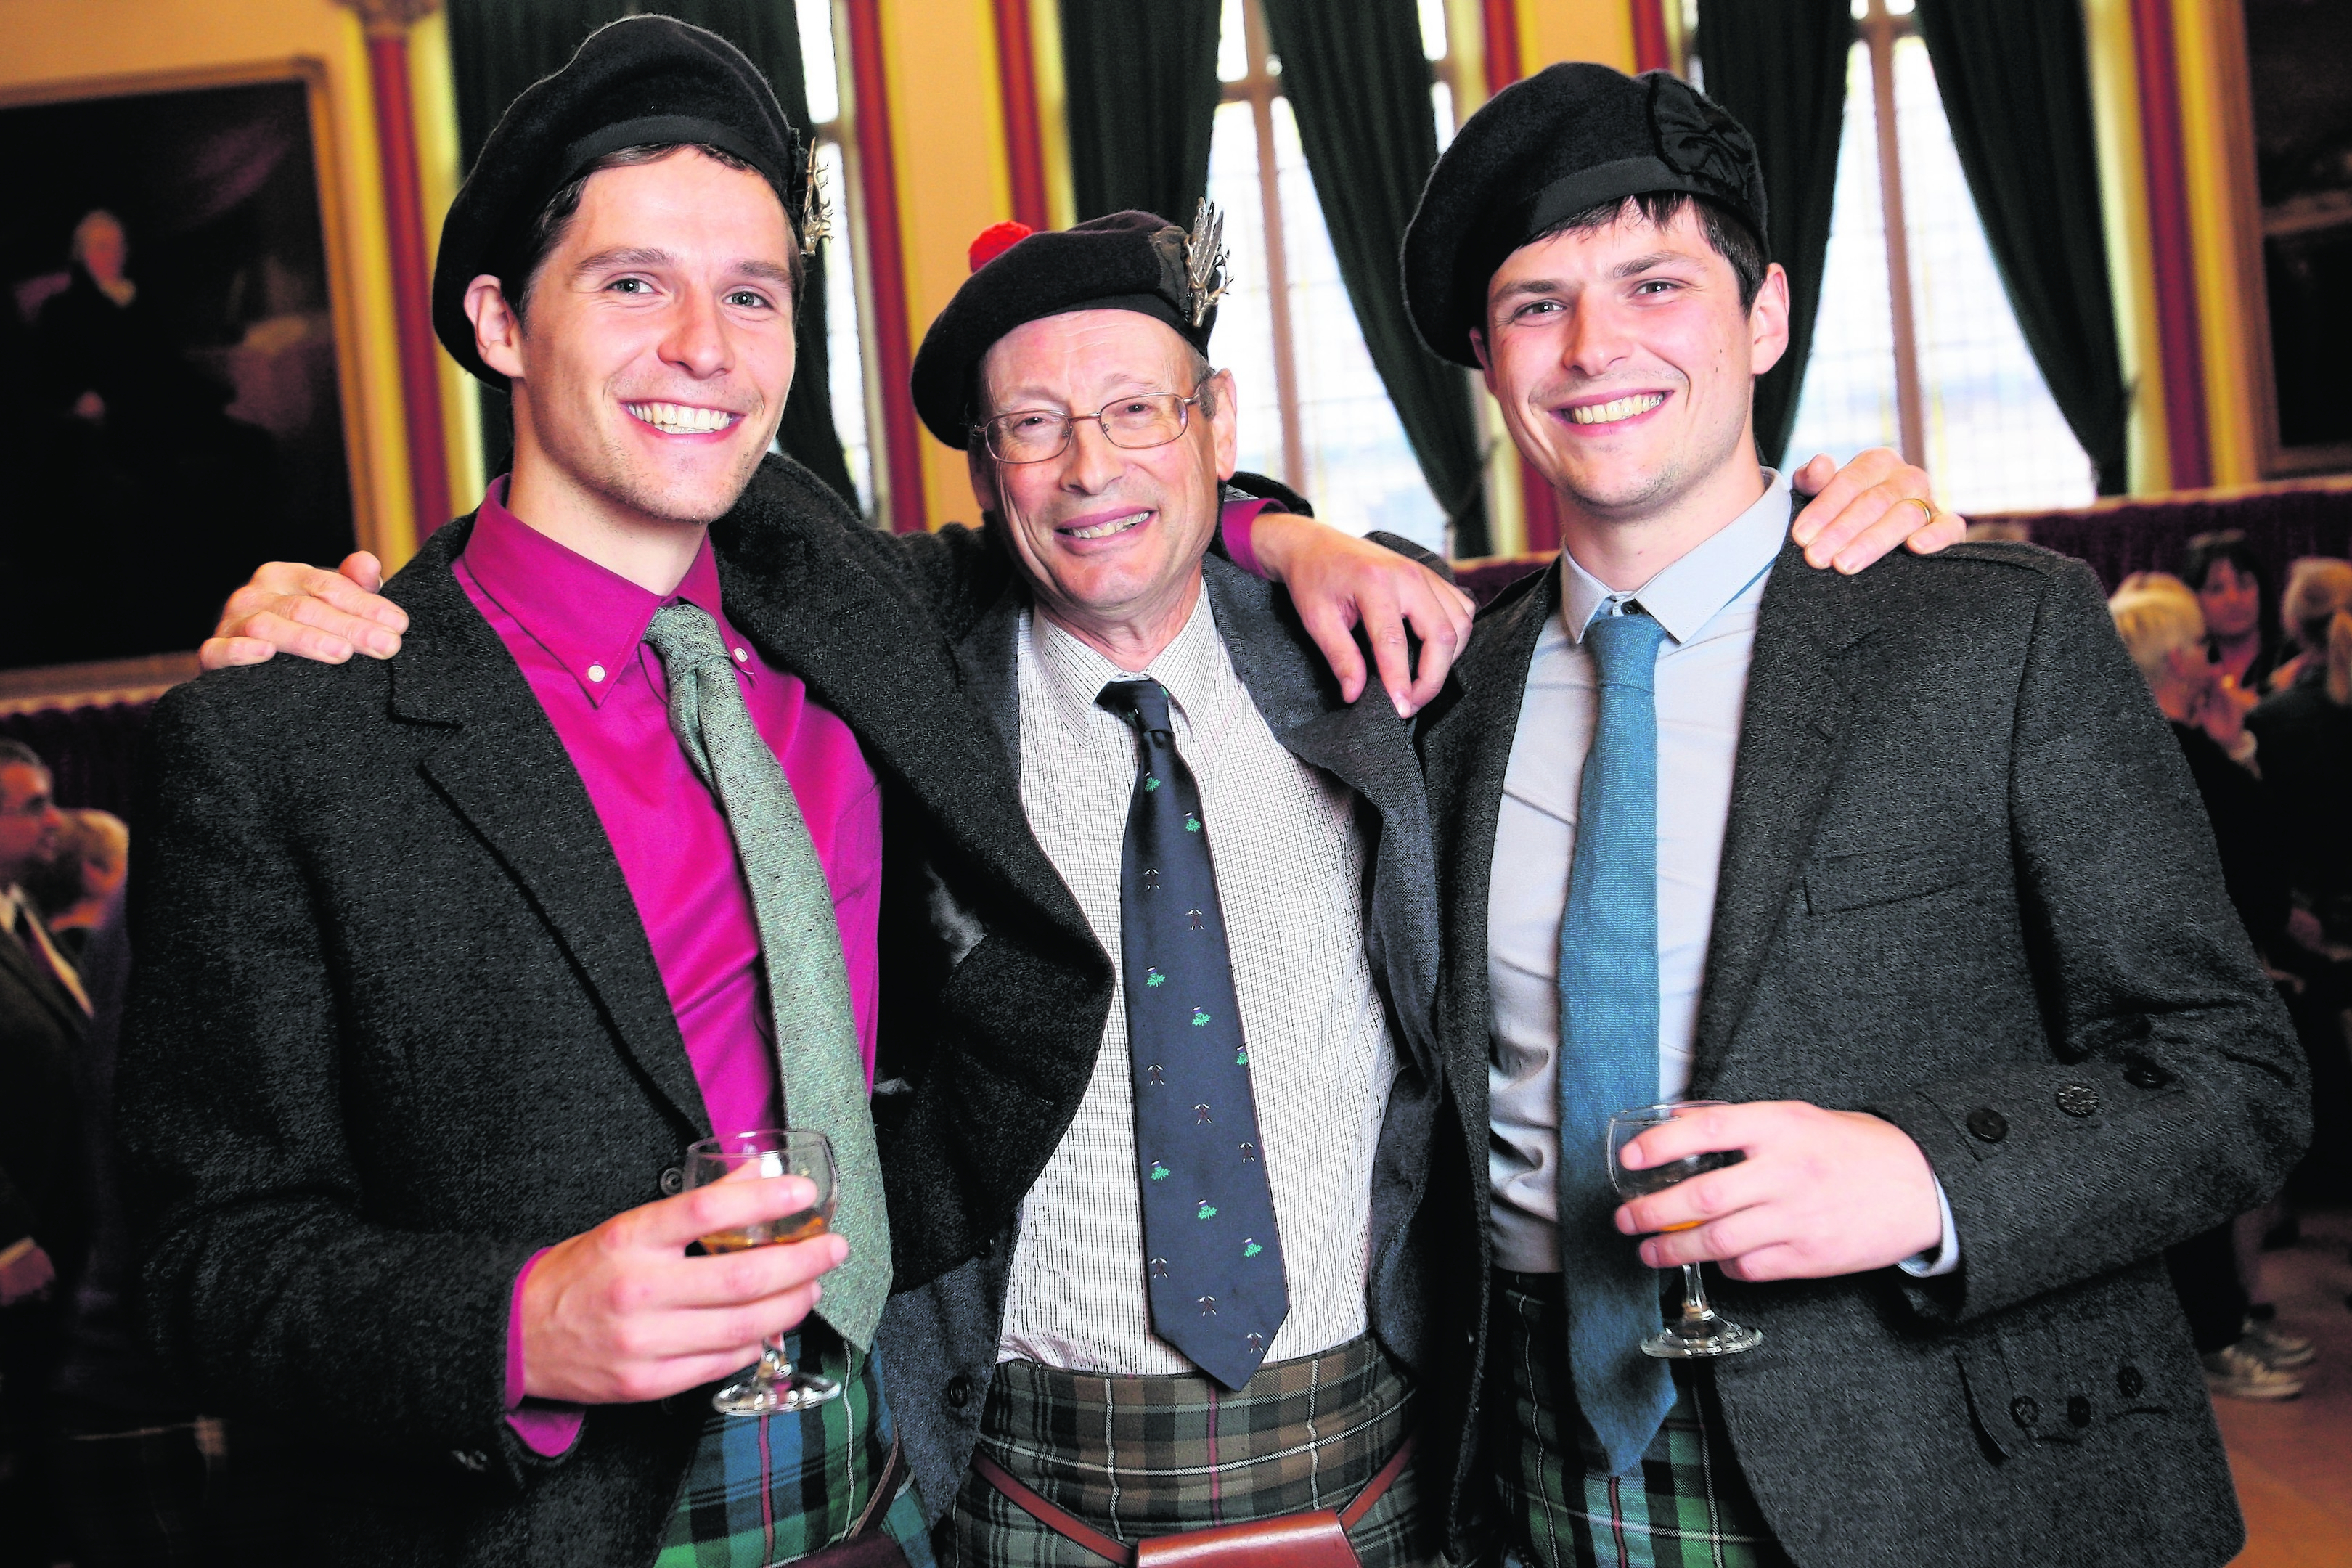 John Mackenzie, Earl of Cromartie, with his sons Colin and Alasdair